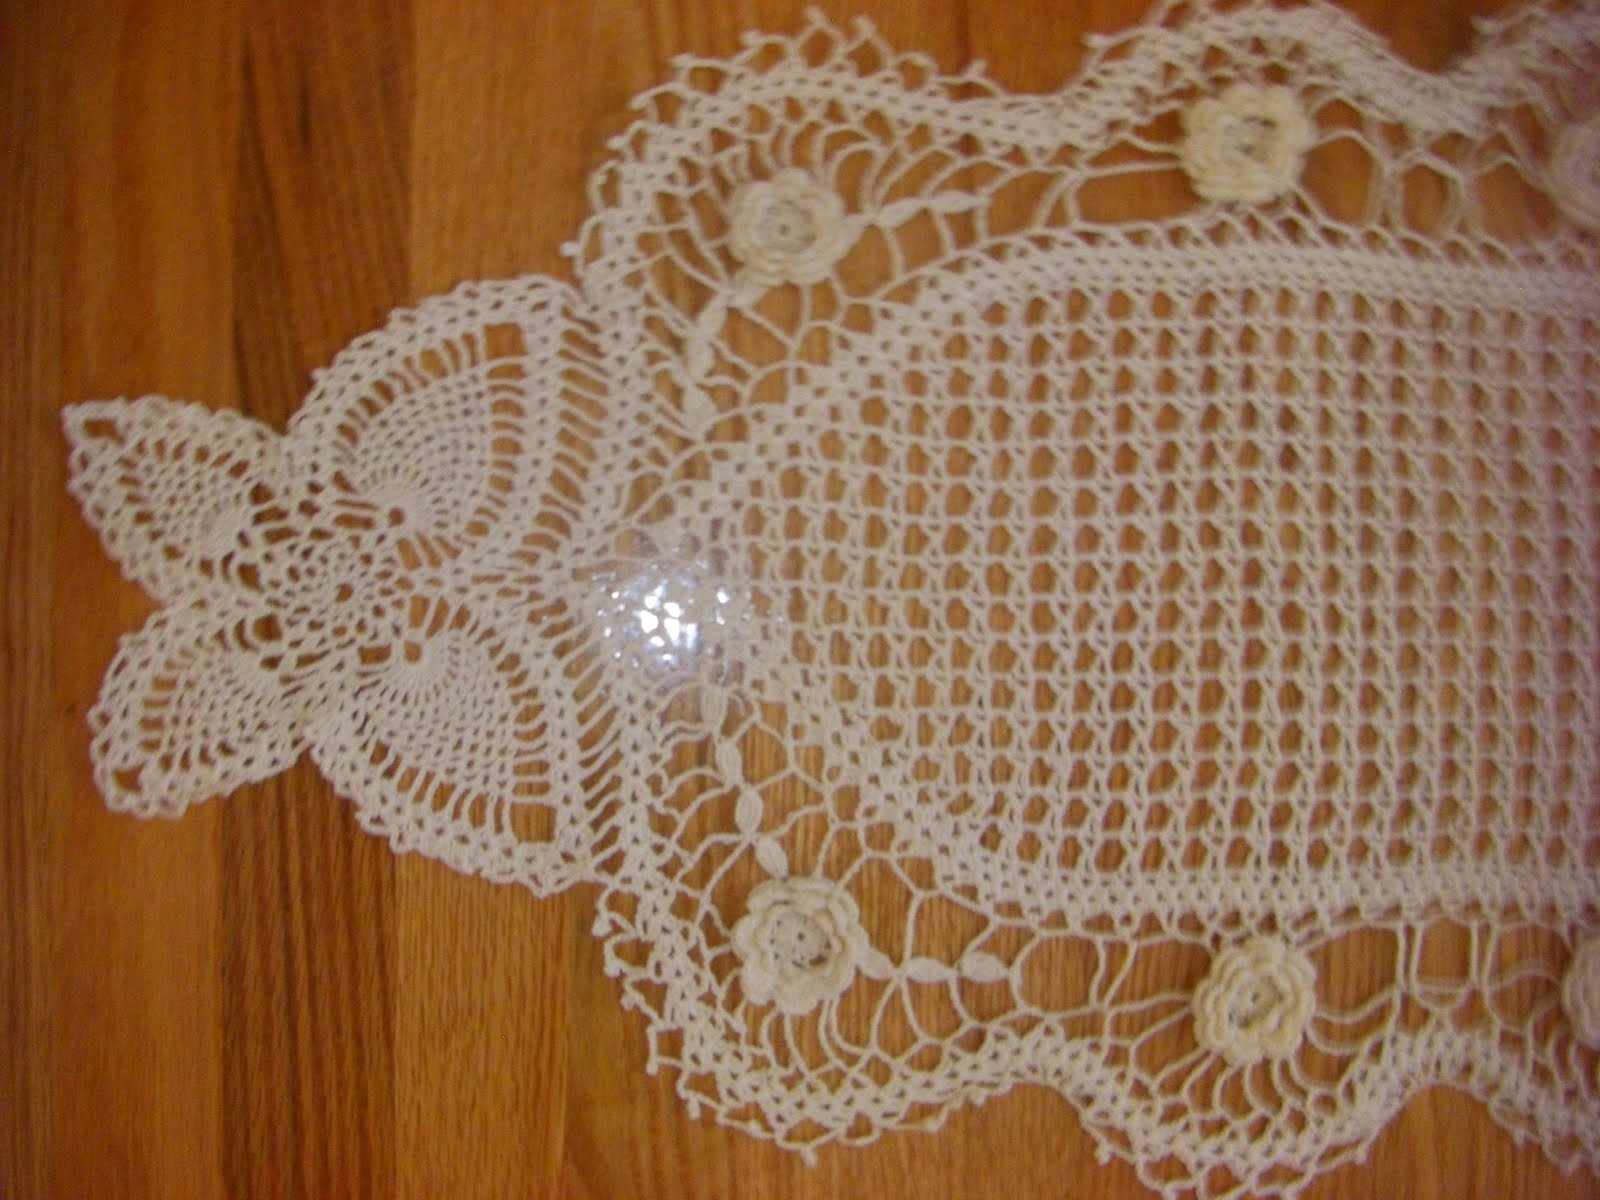 CROCHETED TABLE RUNNER PATTERNS CROCHET PATTERNS